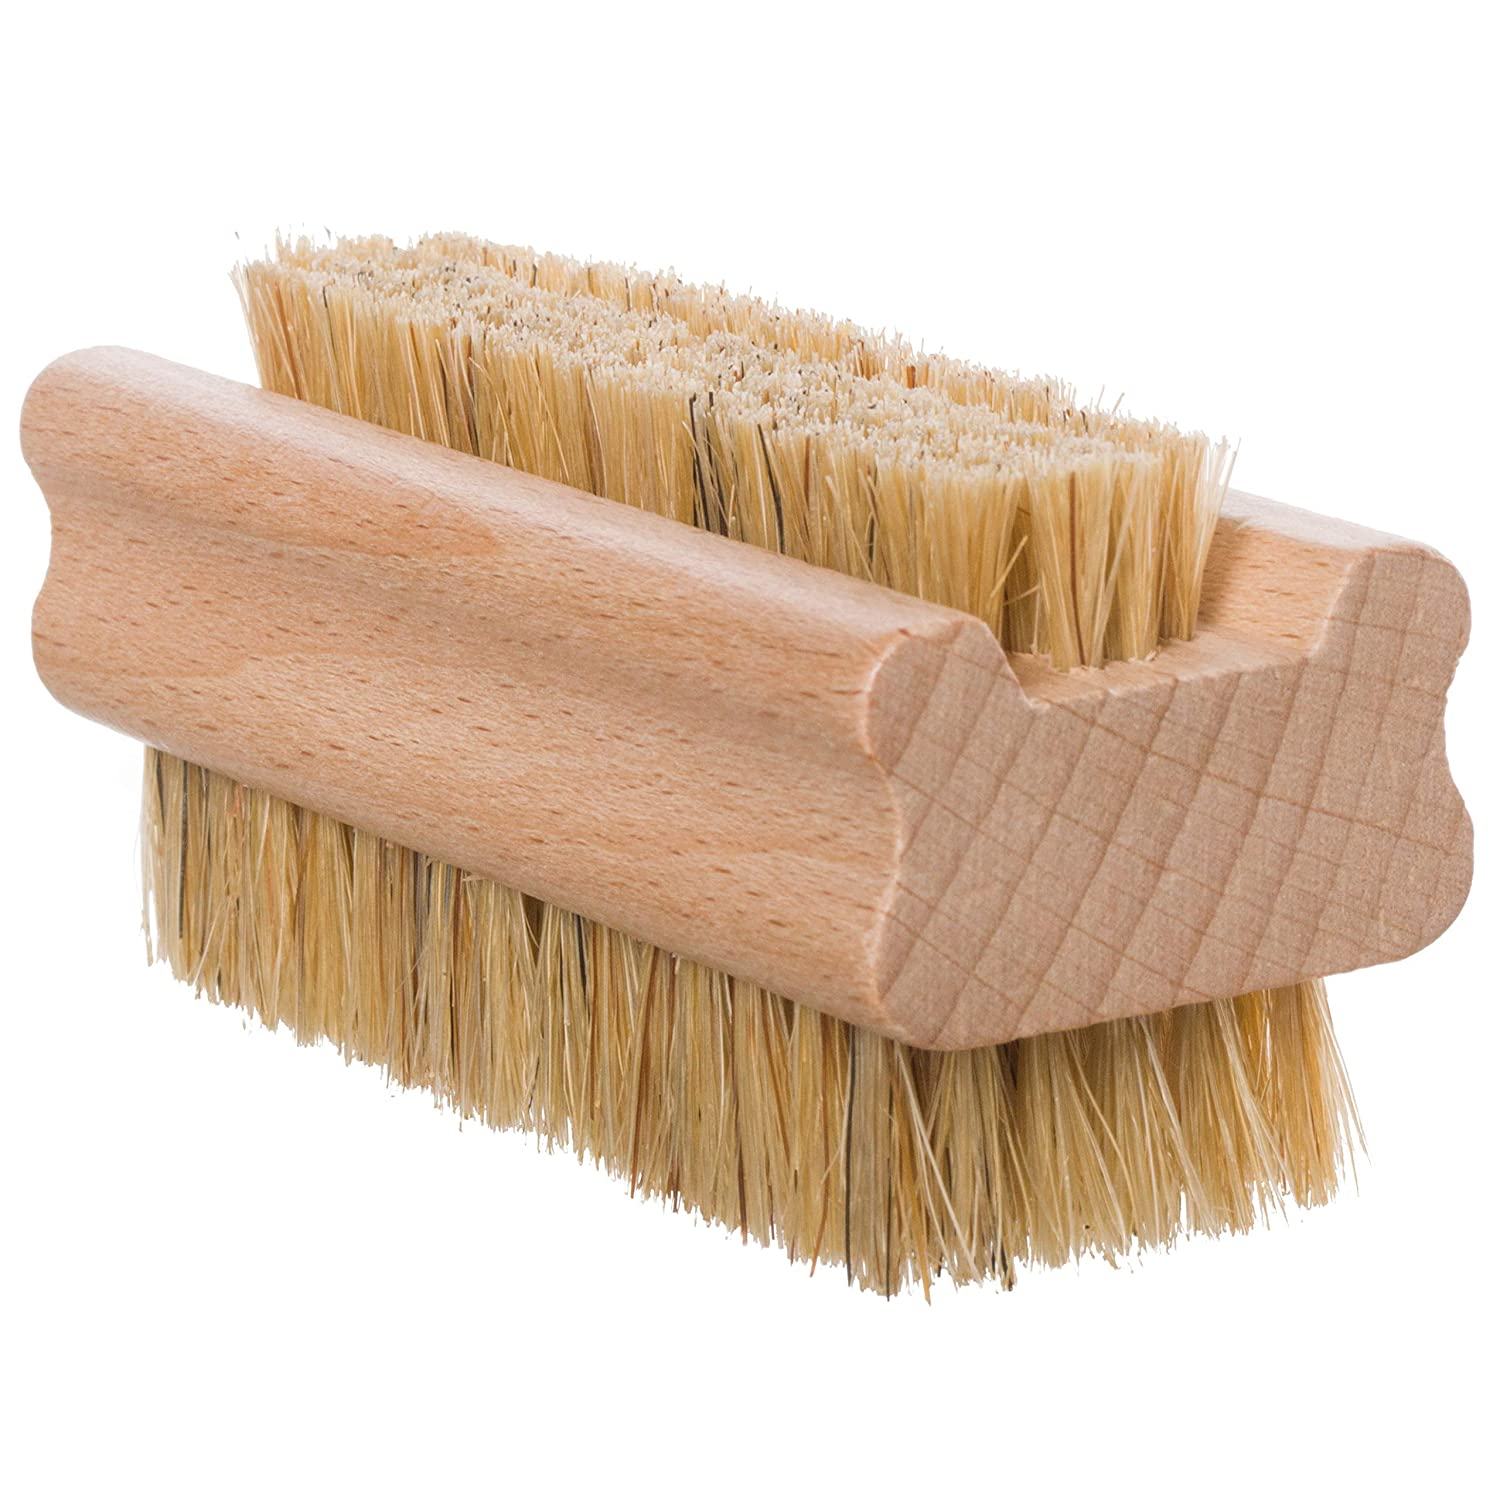 Redecker Natural Pig Bristle Nail Brush with Untreated Beechwood Handle, 3-3/4-Inches : Beauty